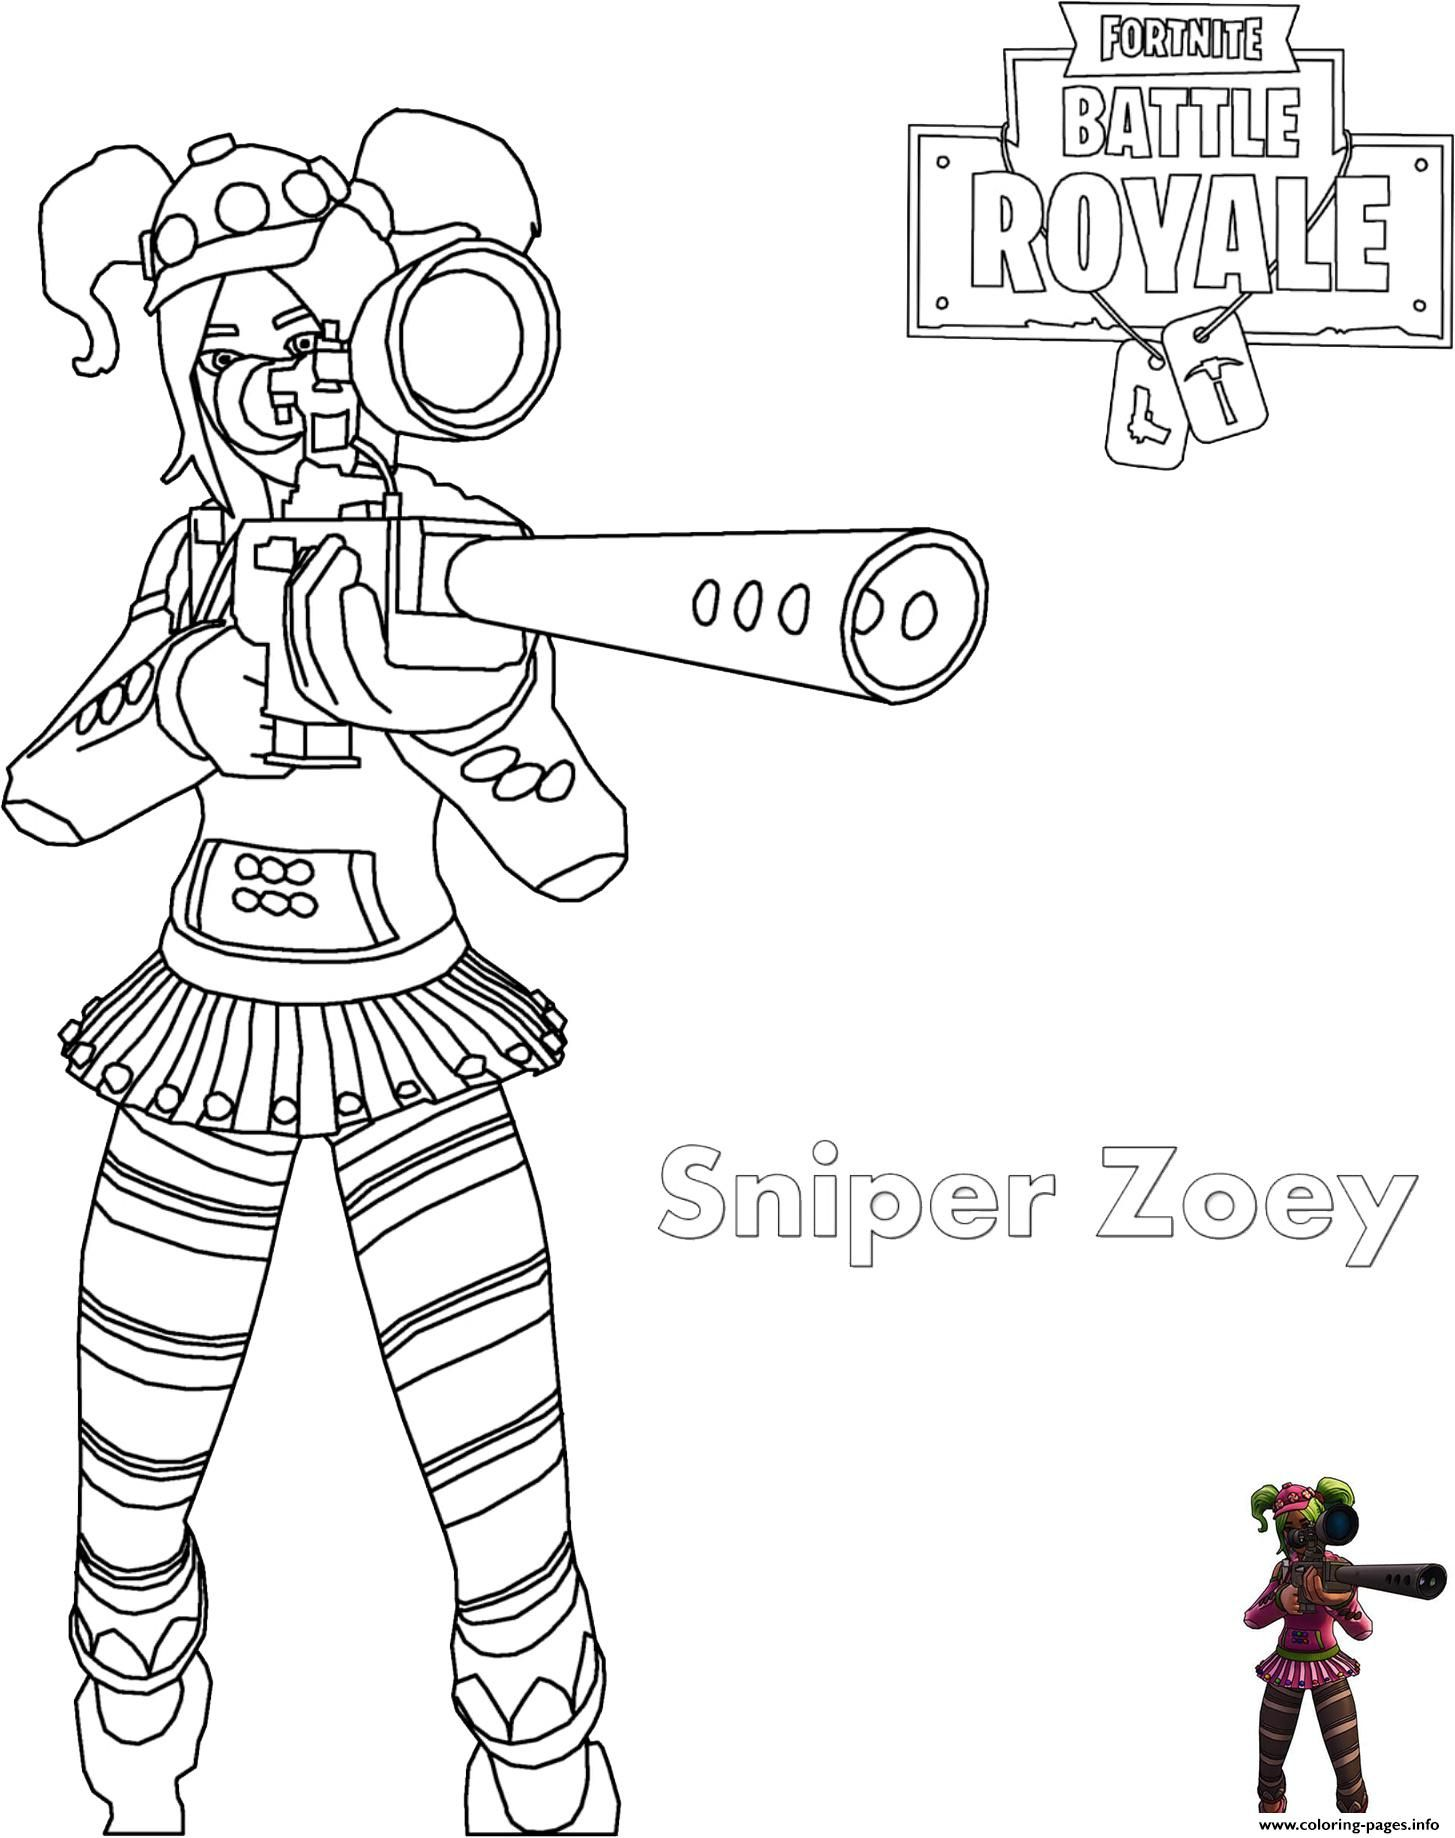 Print zoey sniper rifle fortnite coloring pages Fortnite